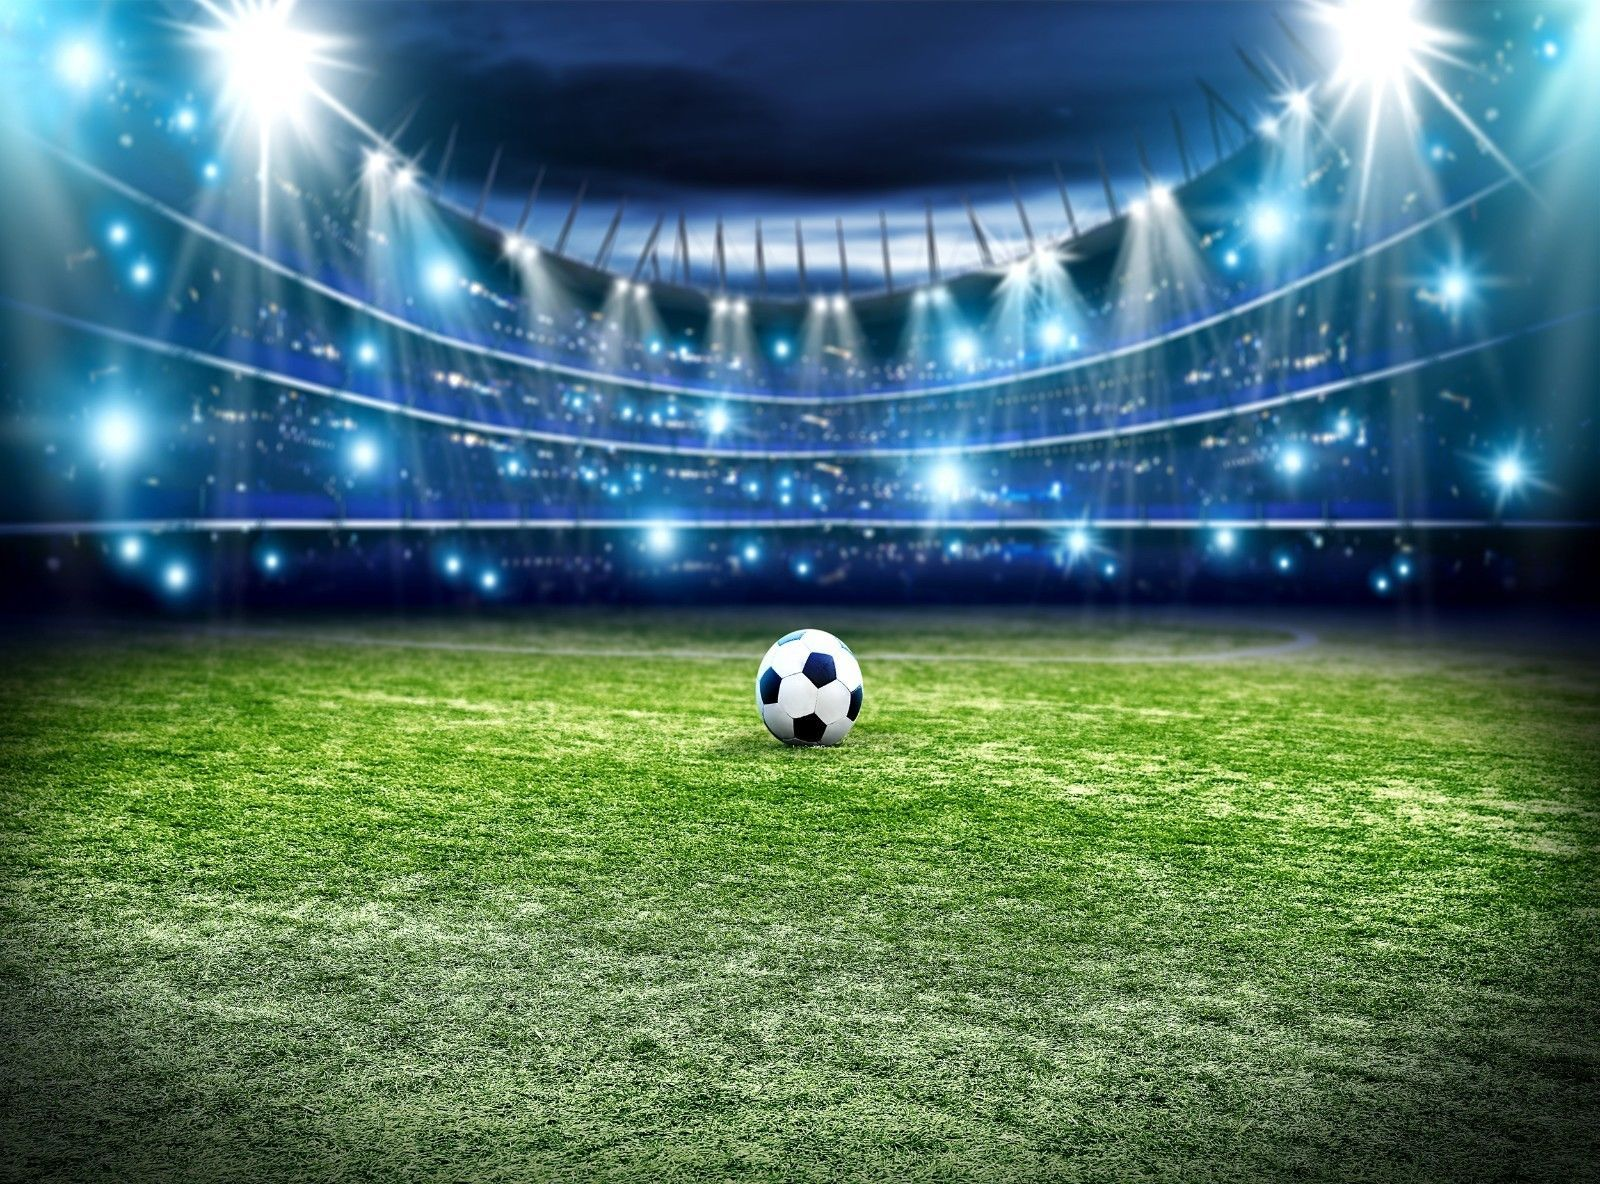 Details About Football Pitch Photo Wallpaper Wall Mural Decor